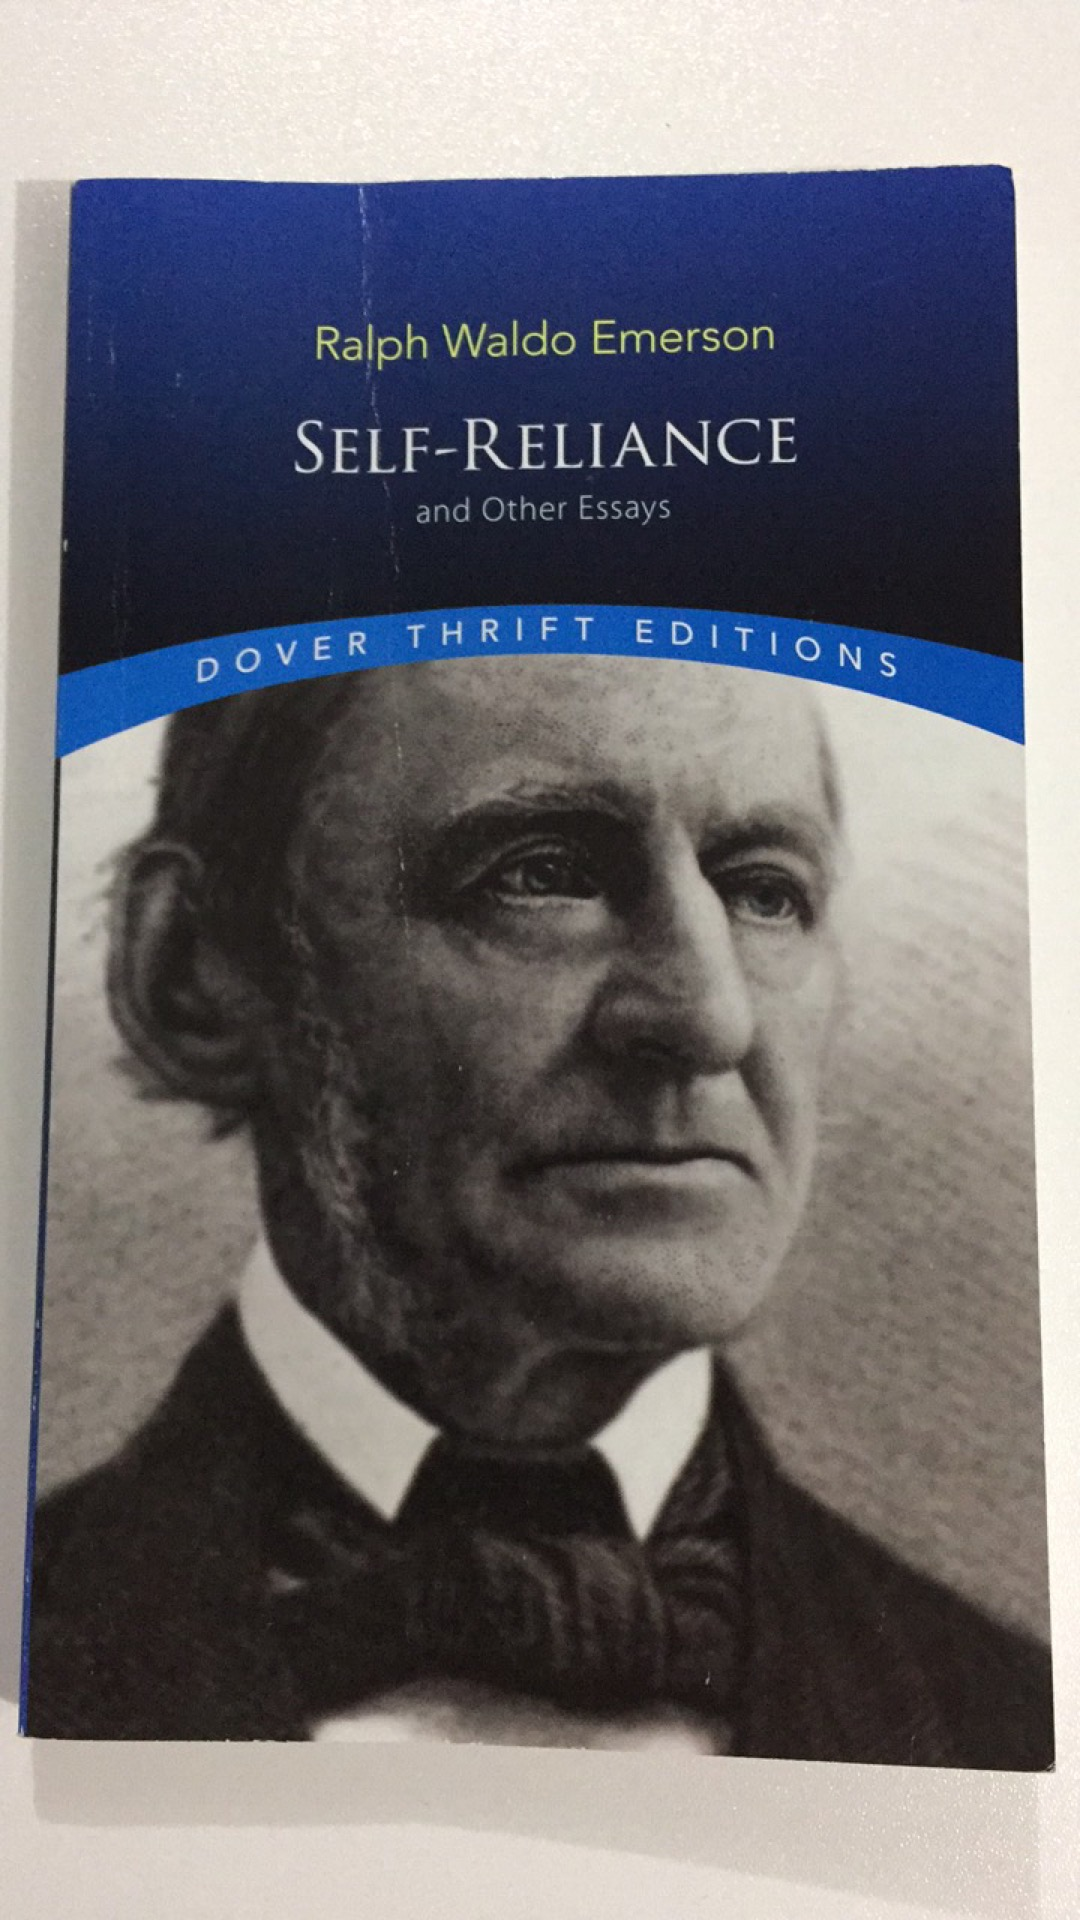 007 Emerson Self Reliance Essay Example By Ralph Waldo Staggering Summary Translated Into Modern English Analysis Full